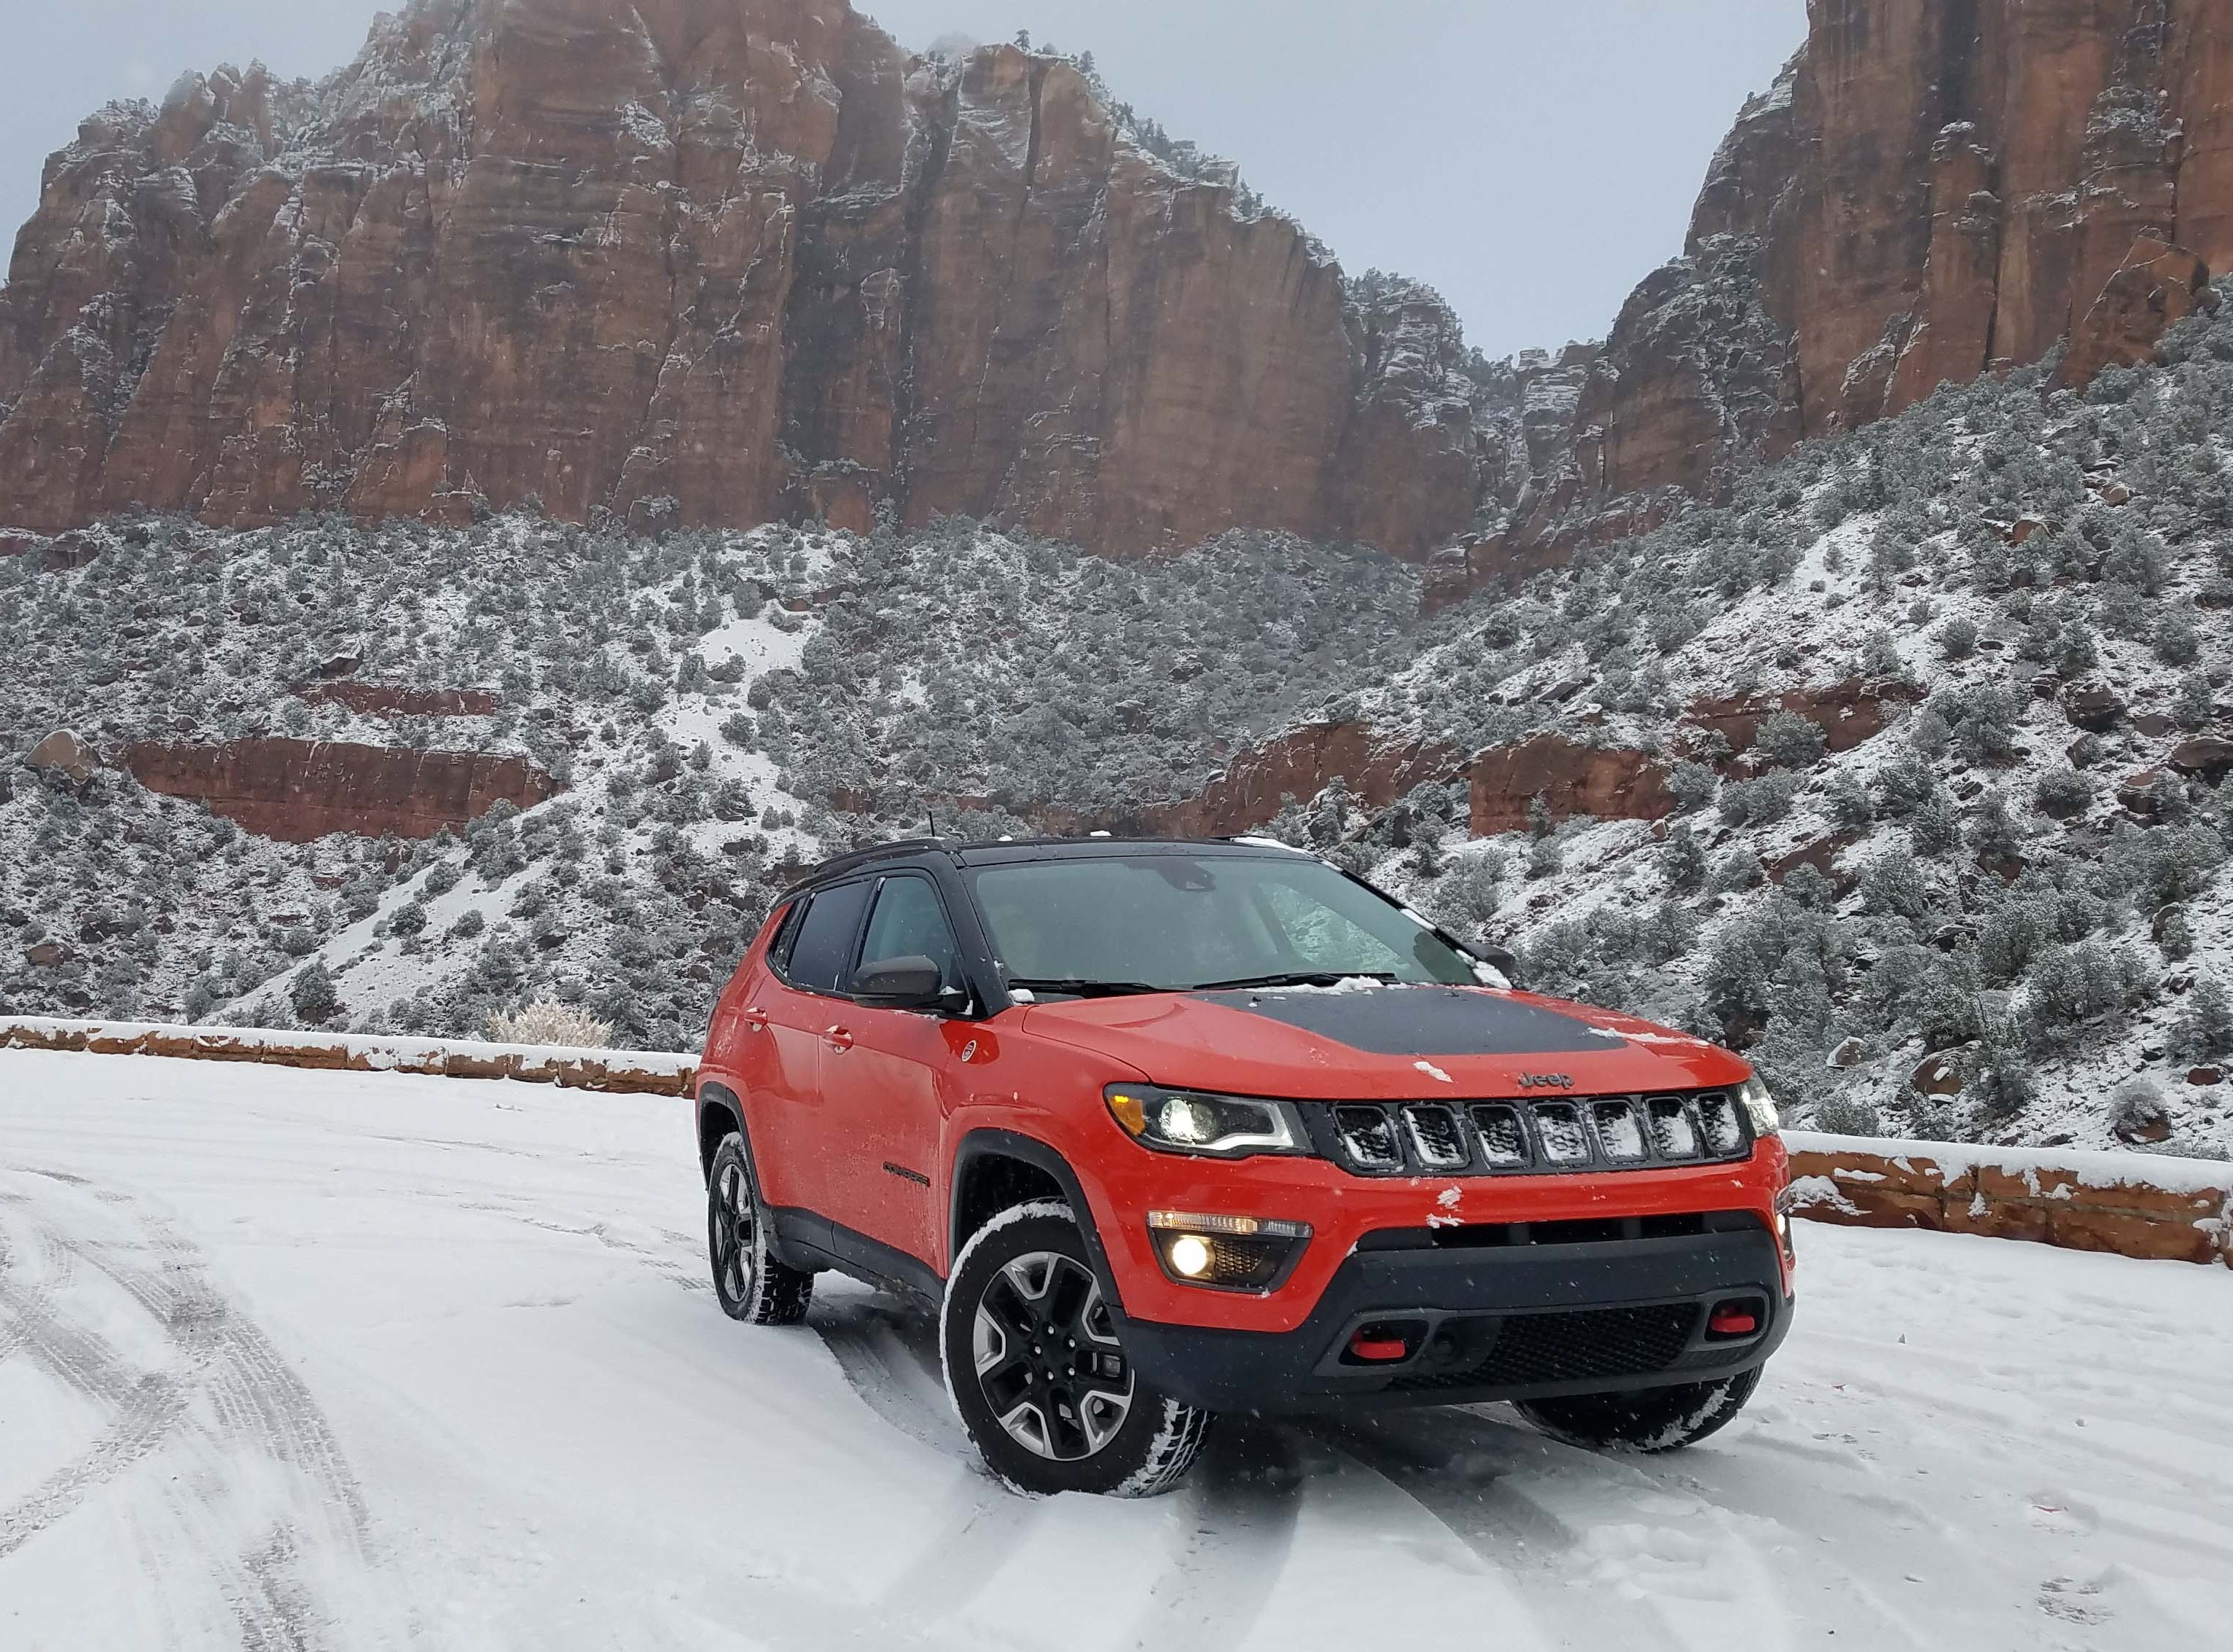 Stunning views — if you can get there. The Jeep Compass Trailhawk churns through icy, snowy, cold Zion Canyon in the teeth of Utah winter.